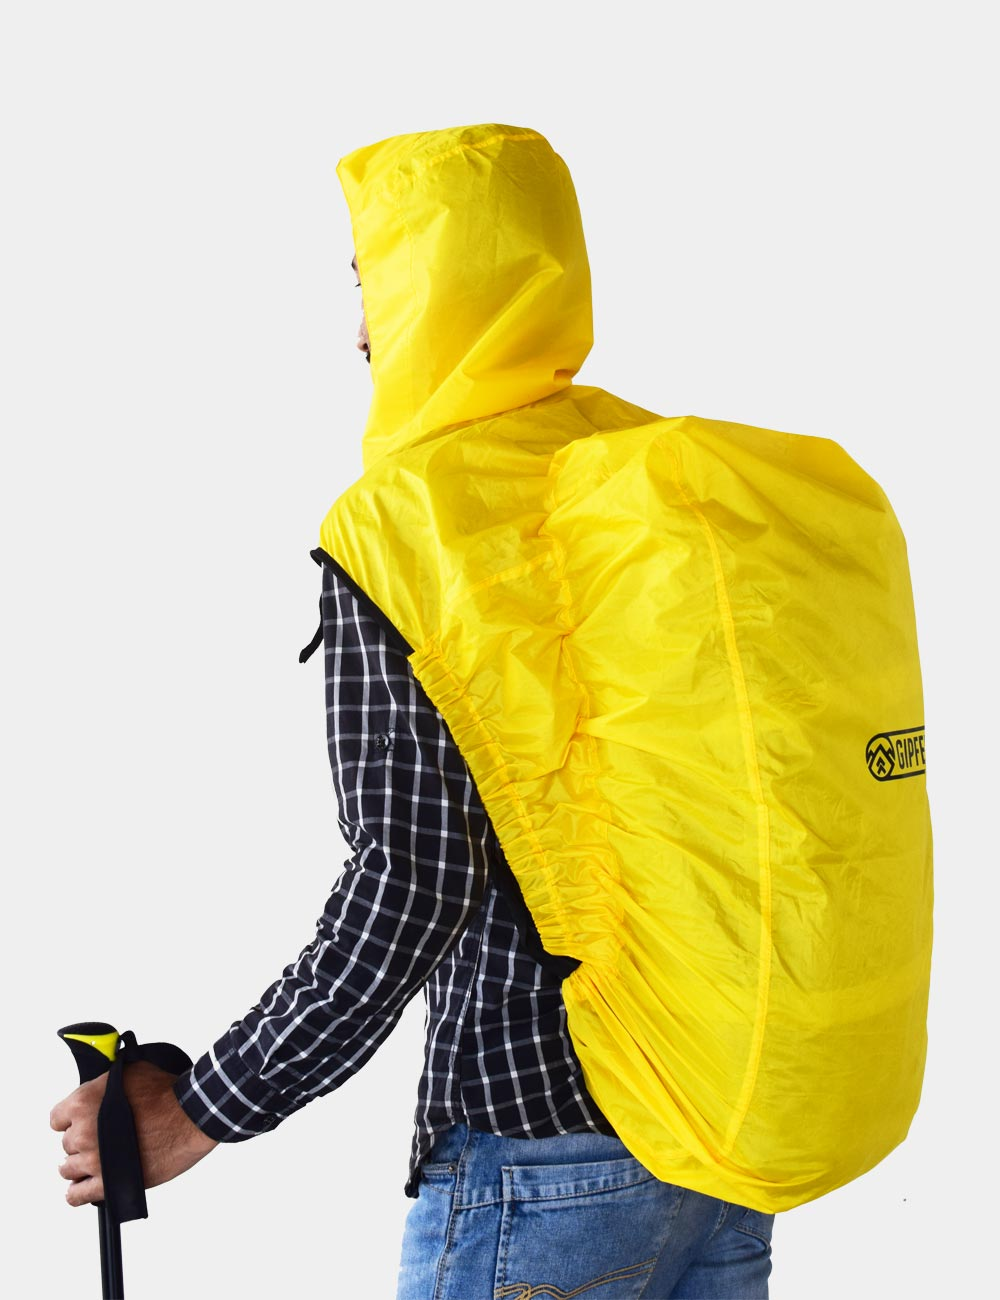 Gipfel Backpack and rucksack rain cover |